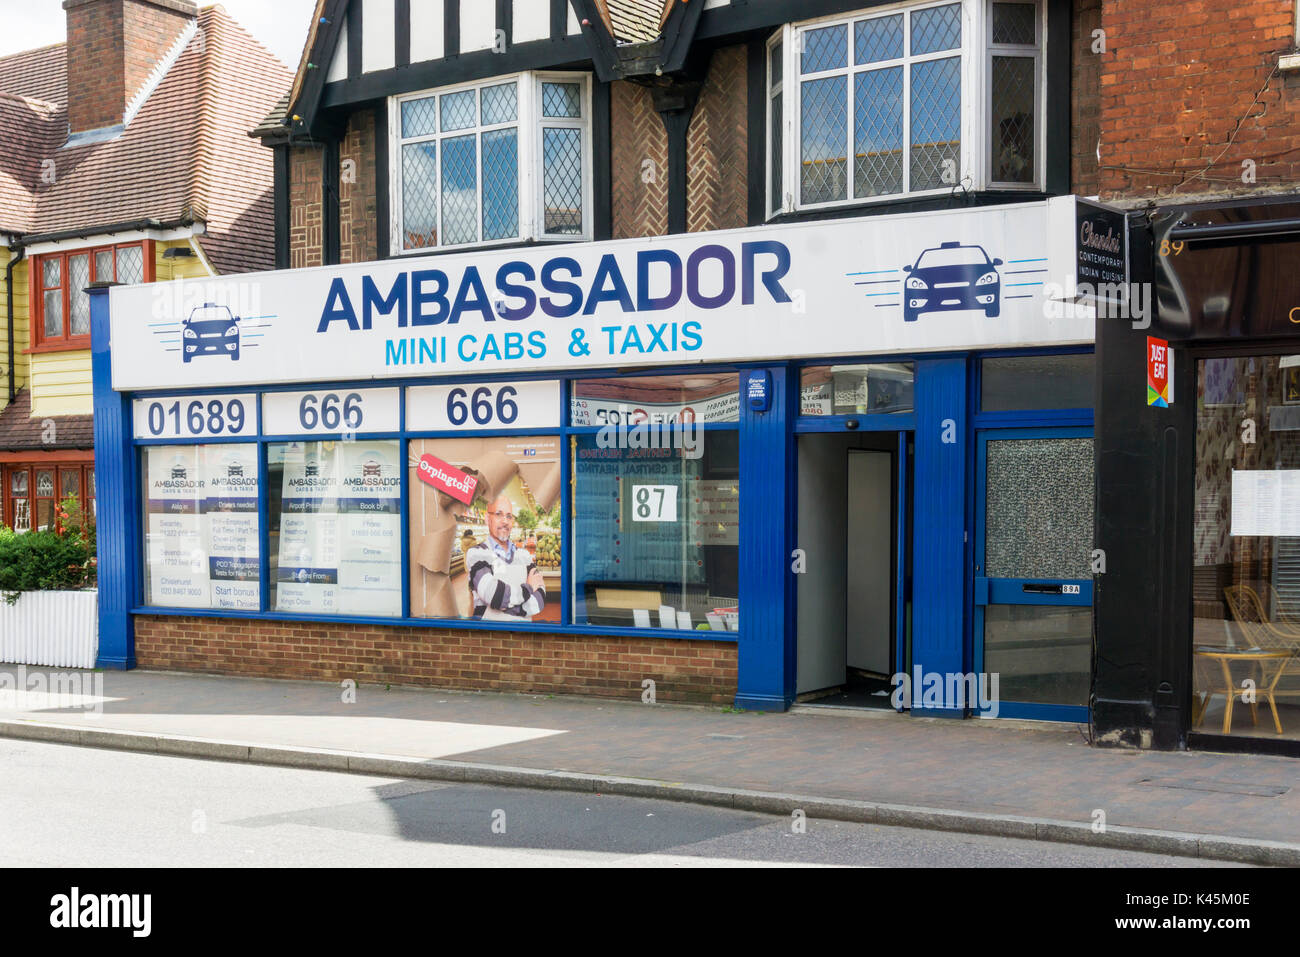 Ambassador Mini Cabs & Taxis in Orpington High Street. - Stock Image